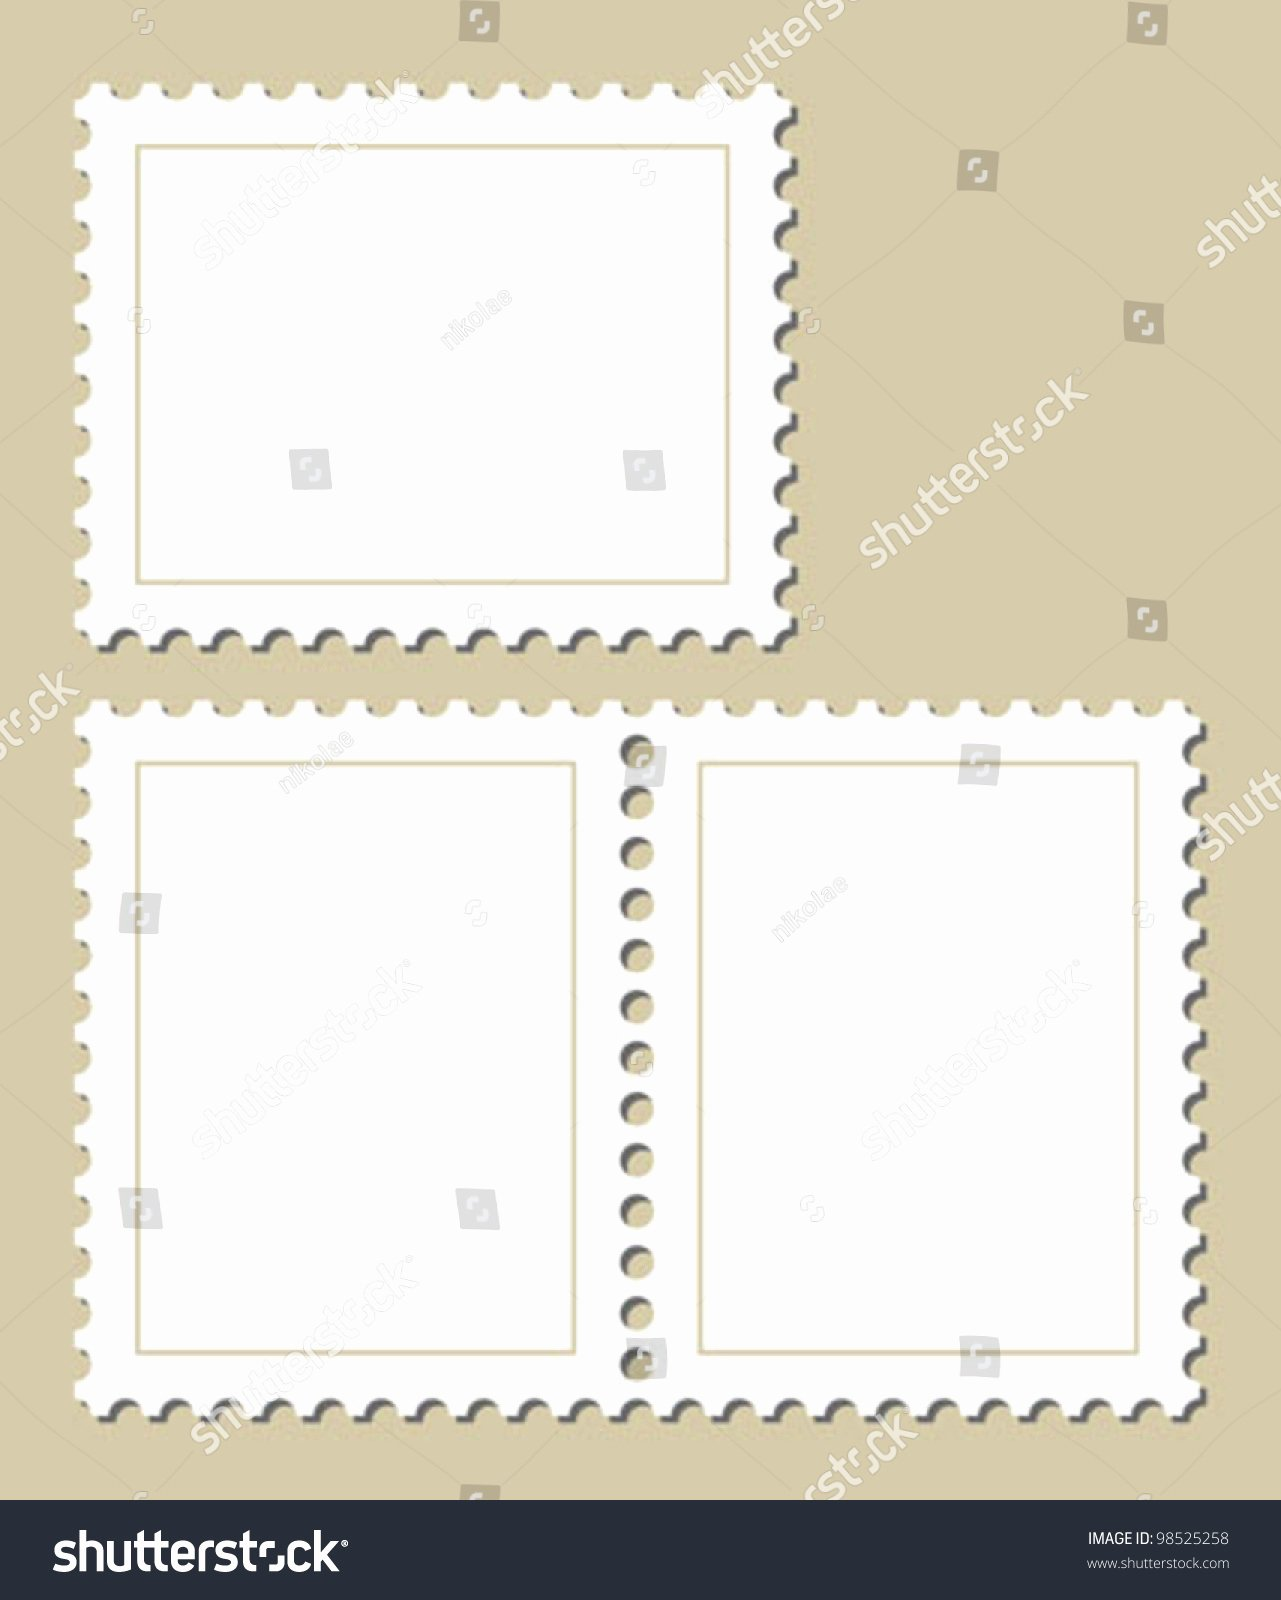 Blank Stamp Template Awesome Blank Stamp Template Stock Vector Illustration